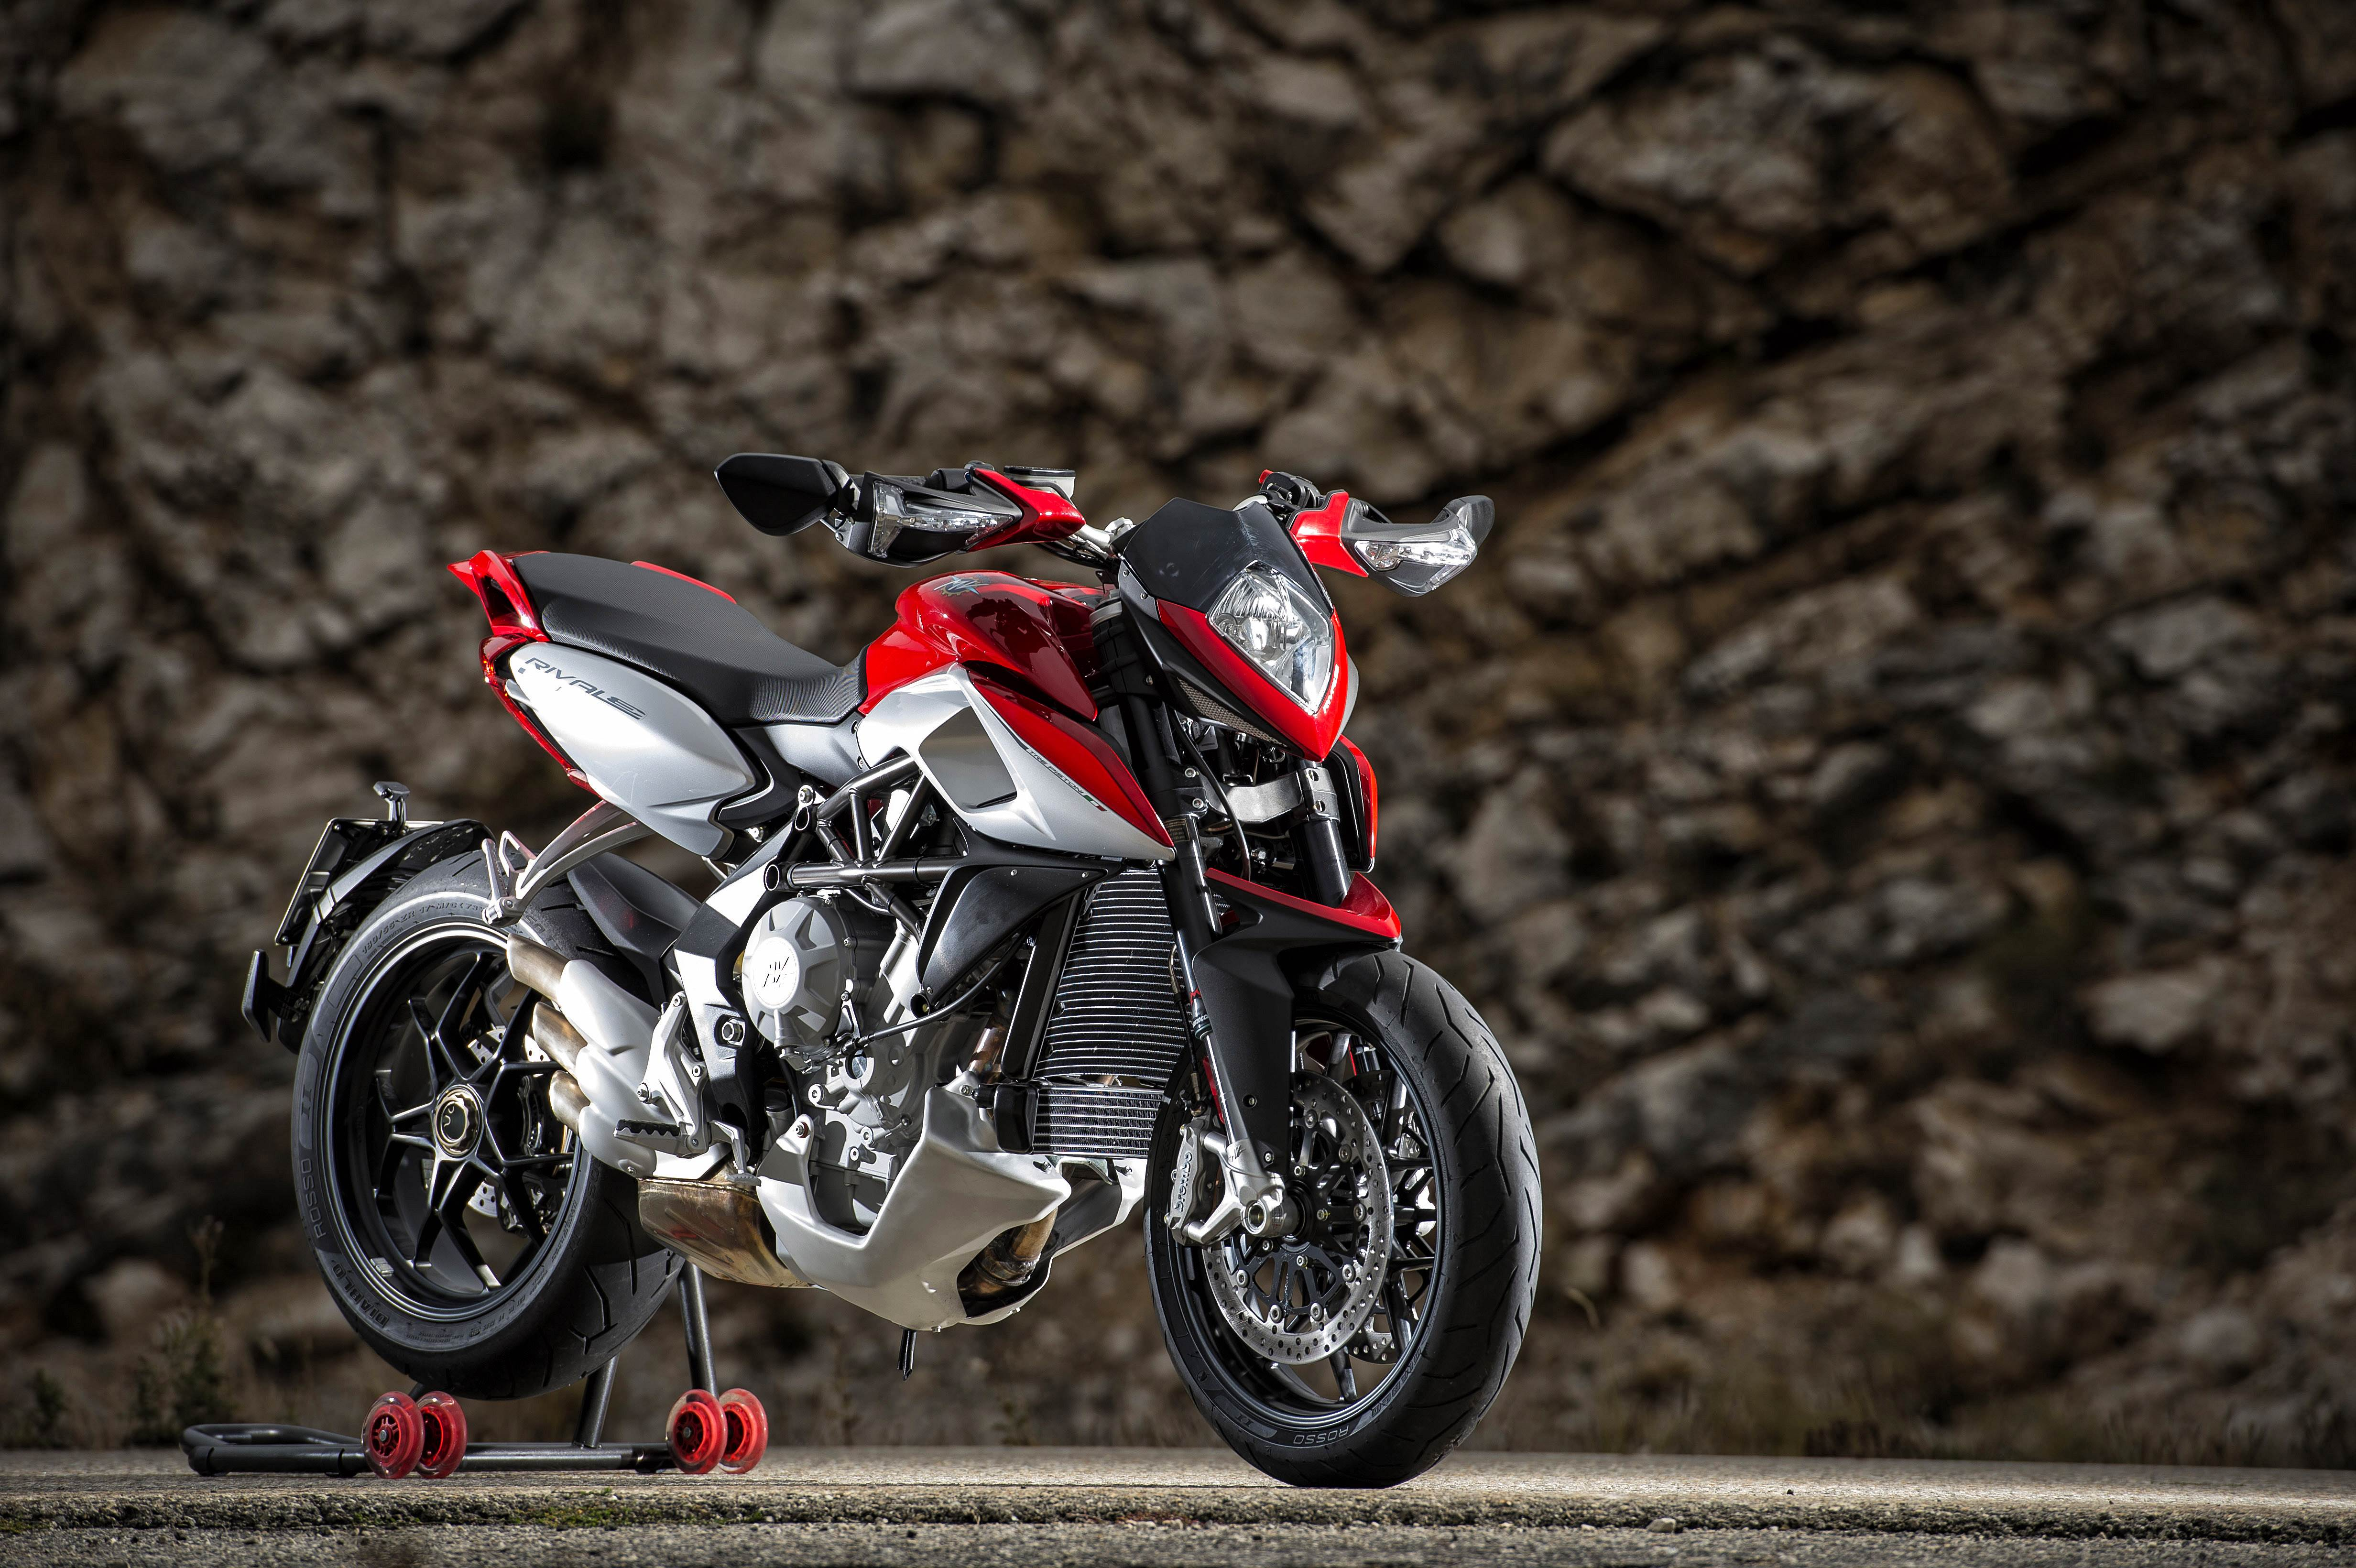 MV Agusta Rivale 800 wallpapers - 01